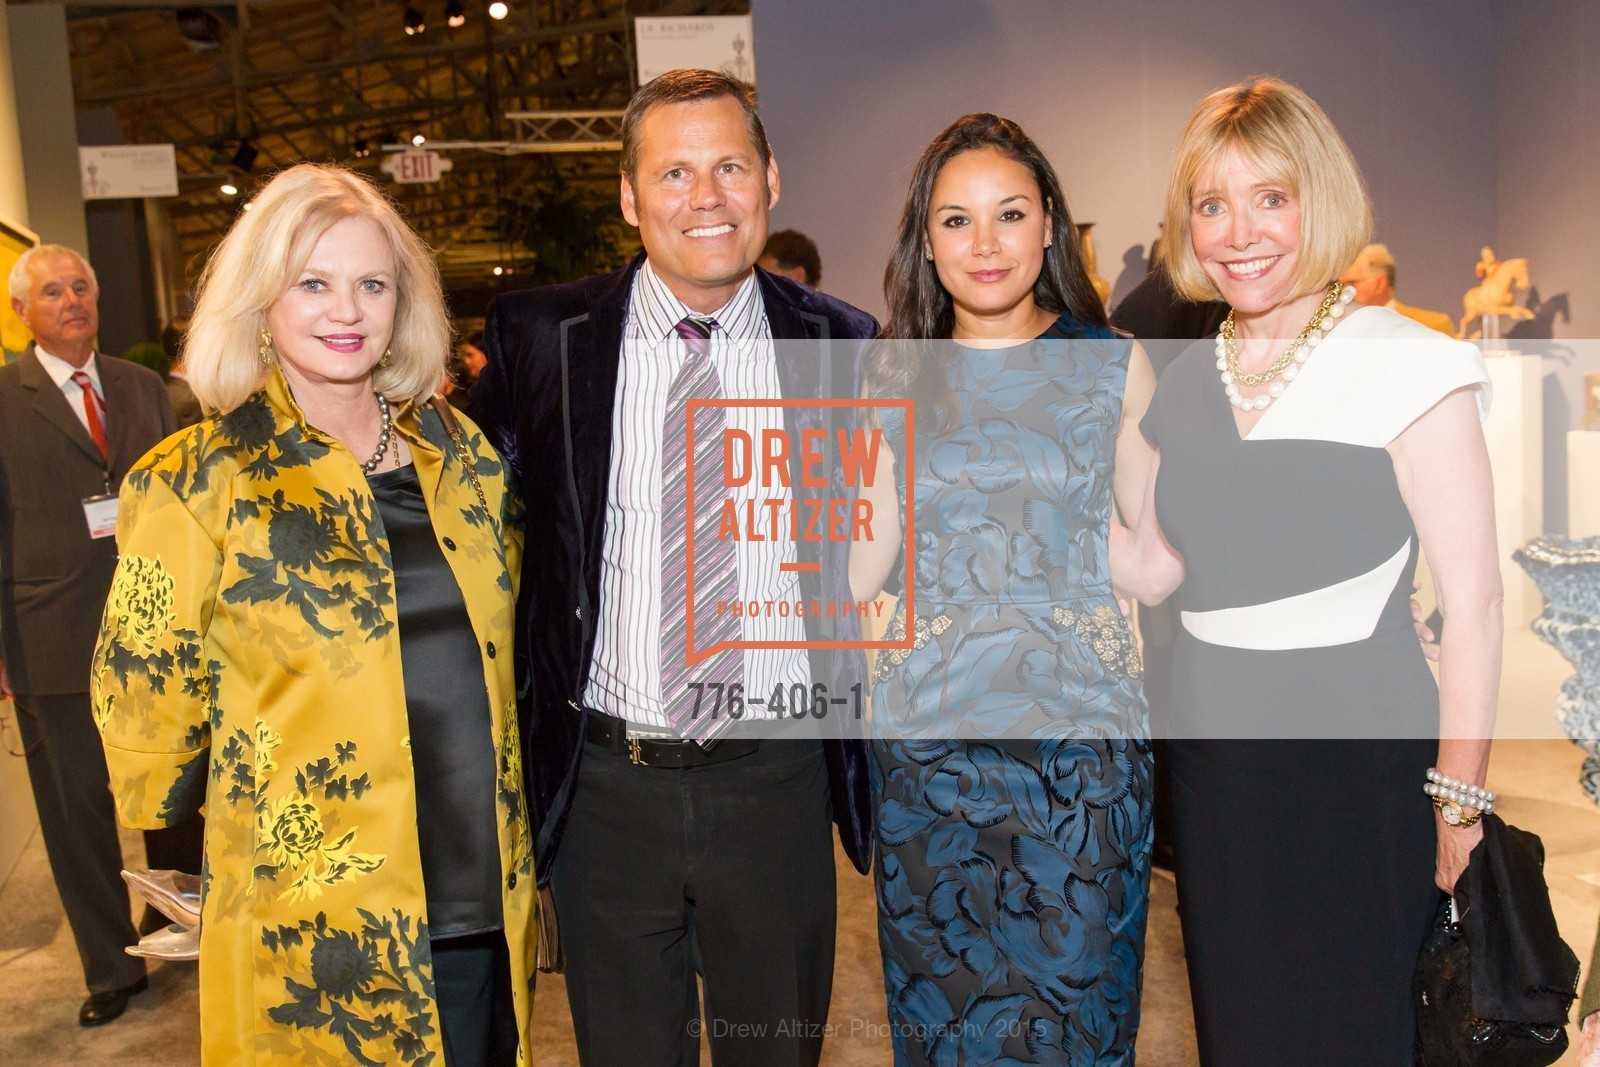 Heide Betz, Mark Calvano, Bahya Oumil-Murad, Merrill Randol, The San Francisco Fall Antiques Show, Festival Pavilion, Fort Mason, October 21st, 2015,Drew Altizer, Drew Altizer Photography, full-service agency, private events, San Francisco photographer, photographer california